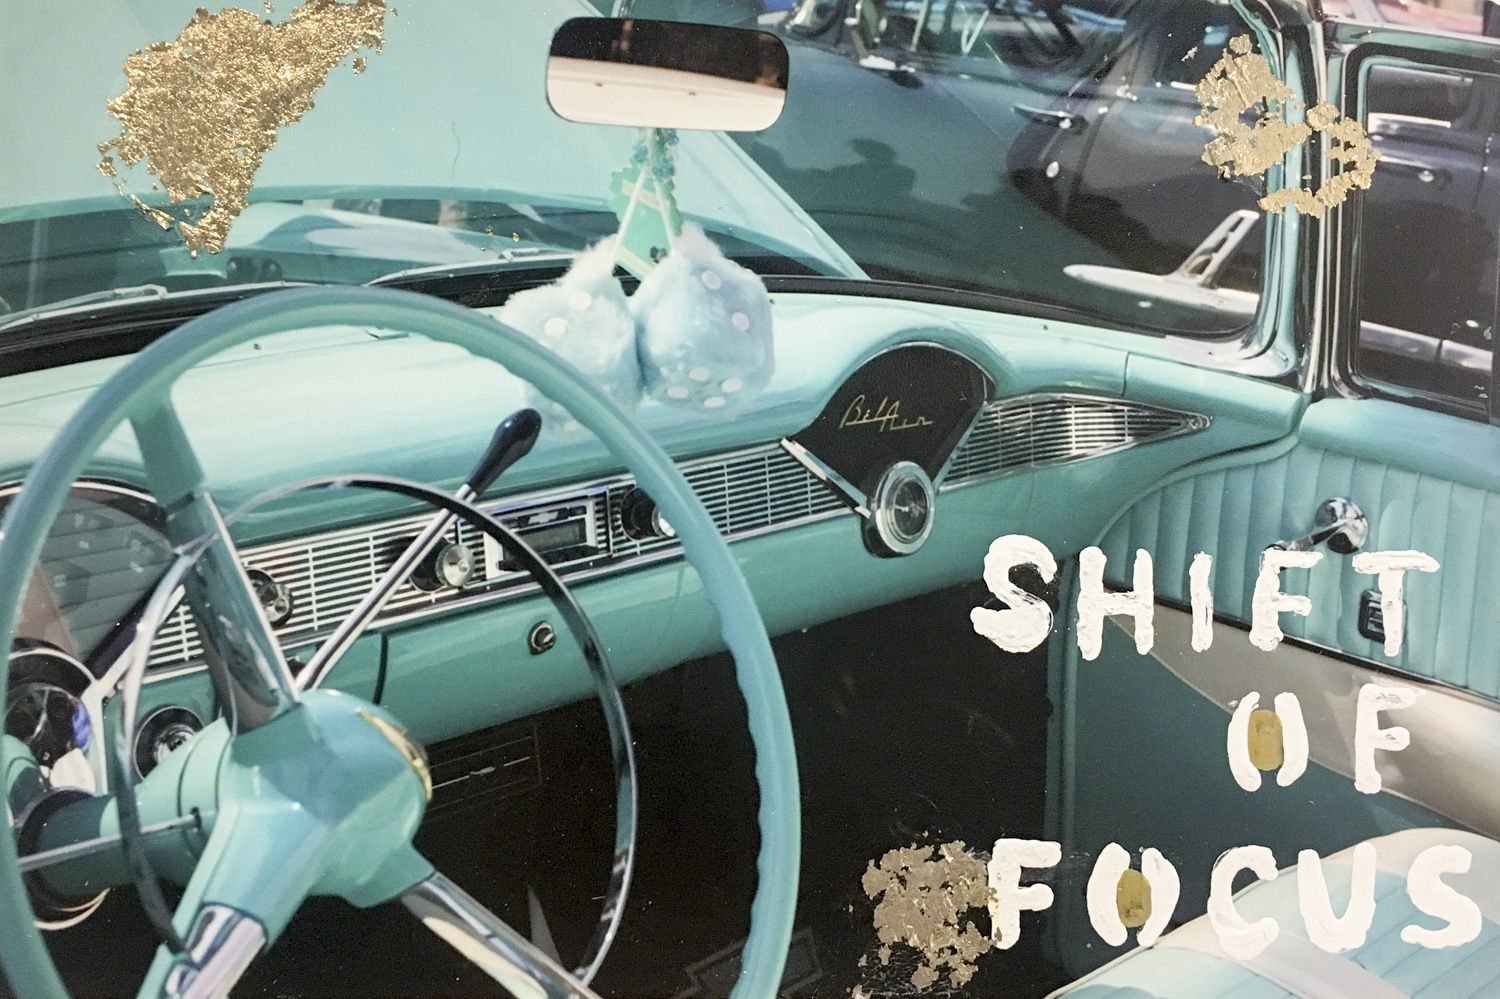 Shift of Focus  by Talia Shipman